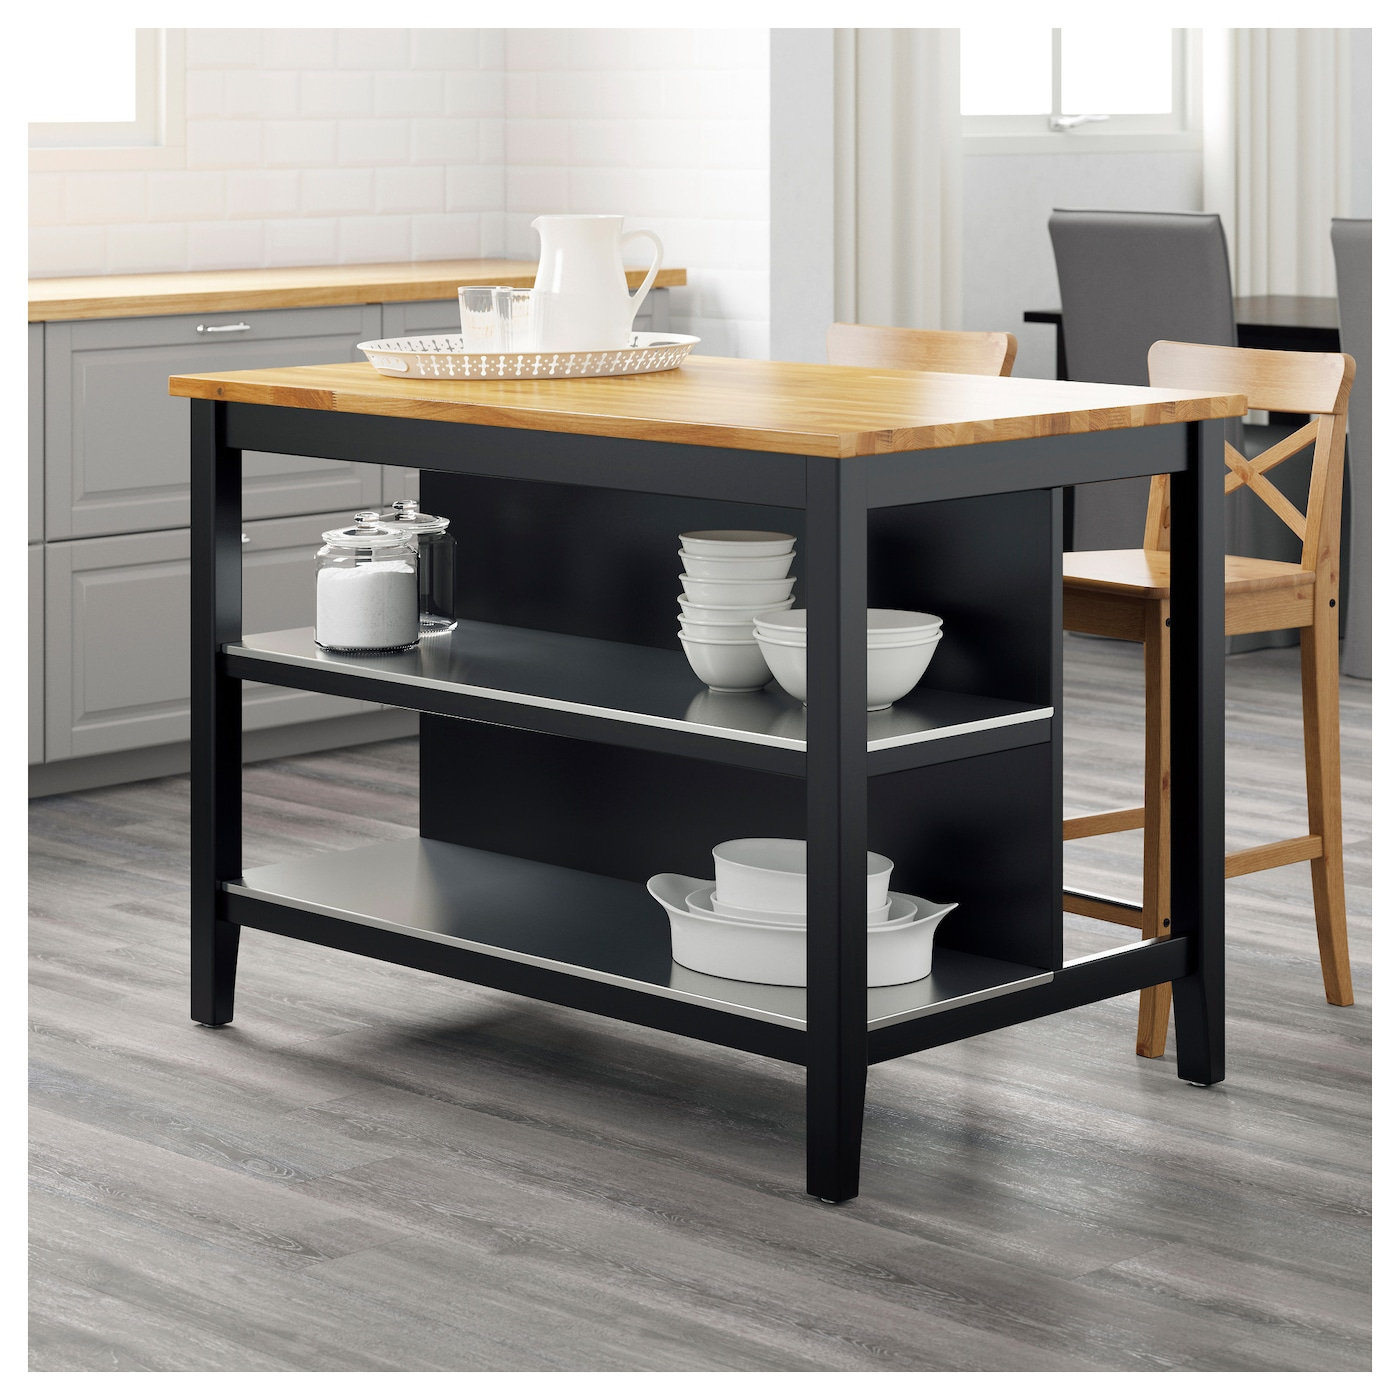 island table for kitchen ikea stenstorp kitchen island black brown oak 126 x 79 cm ikea 7602